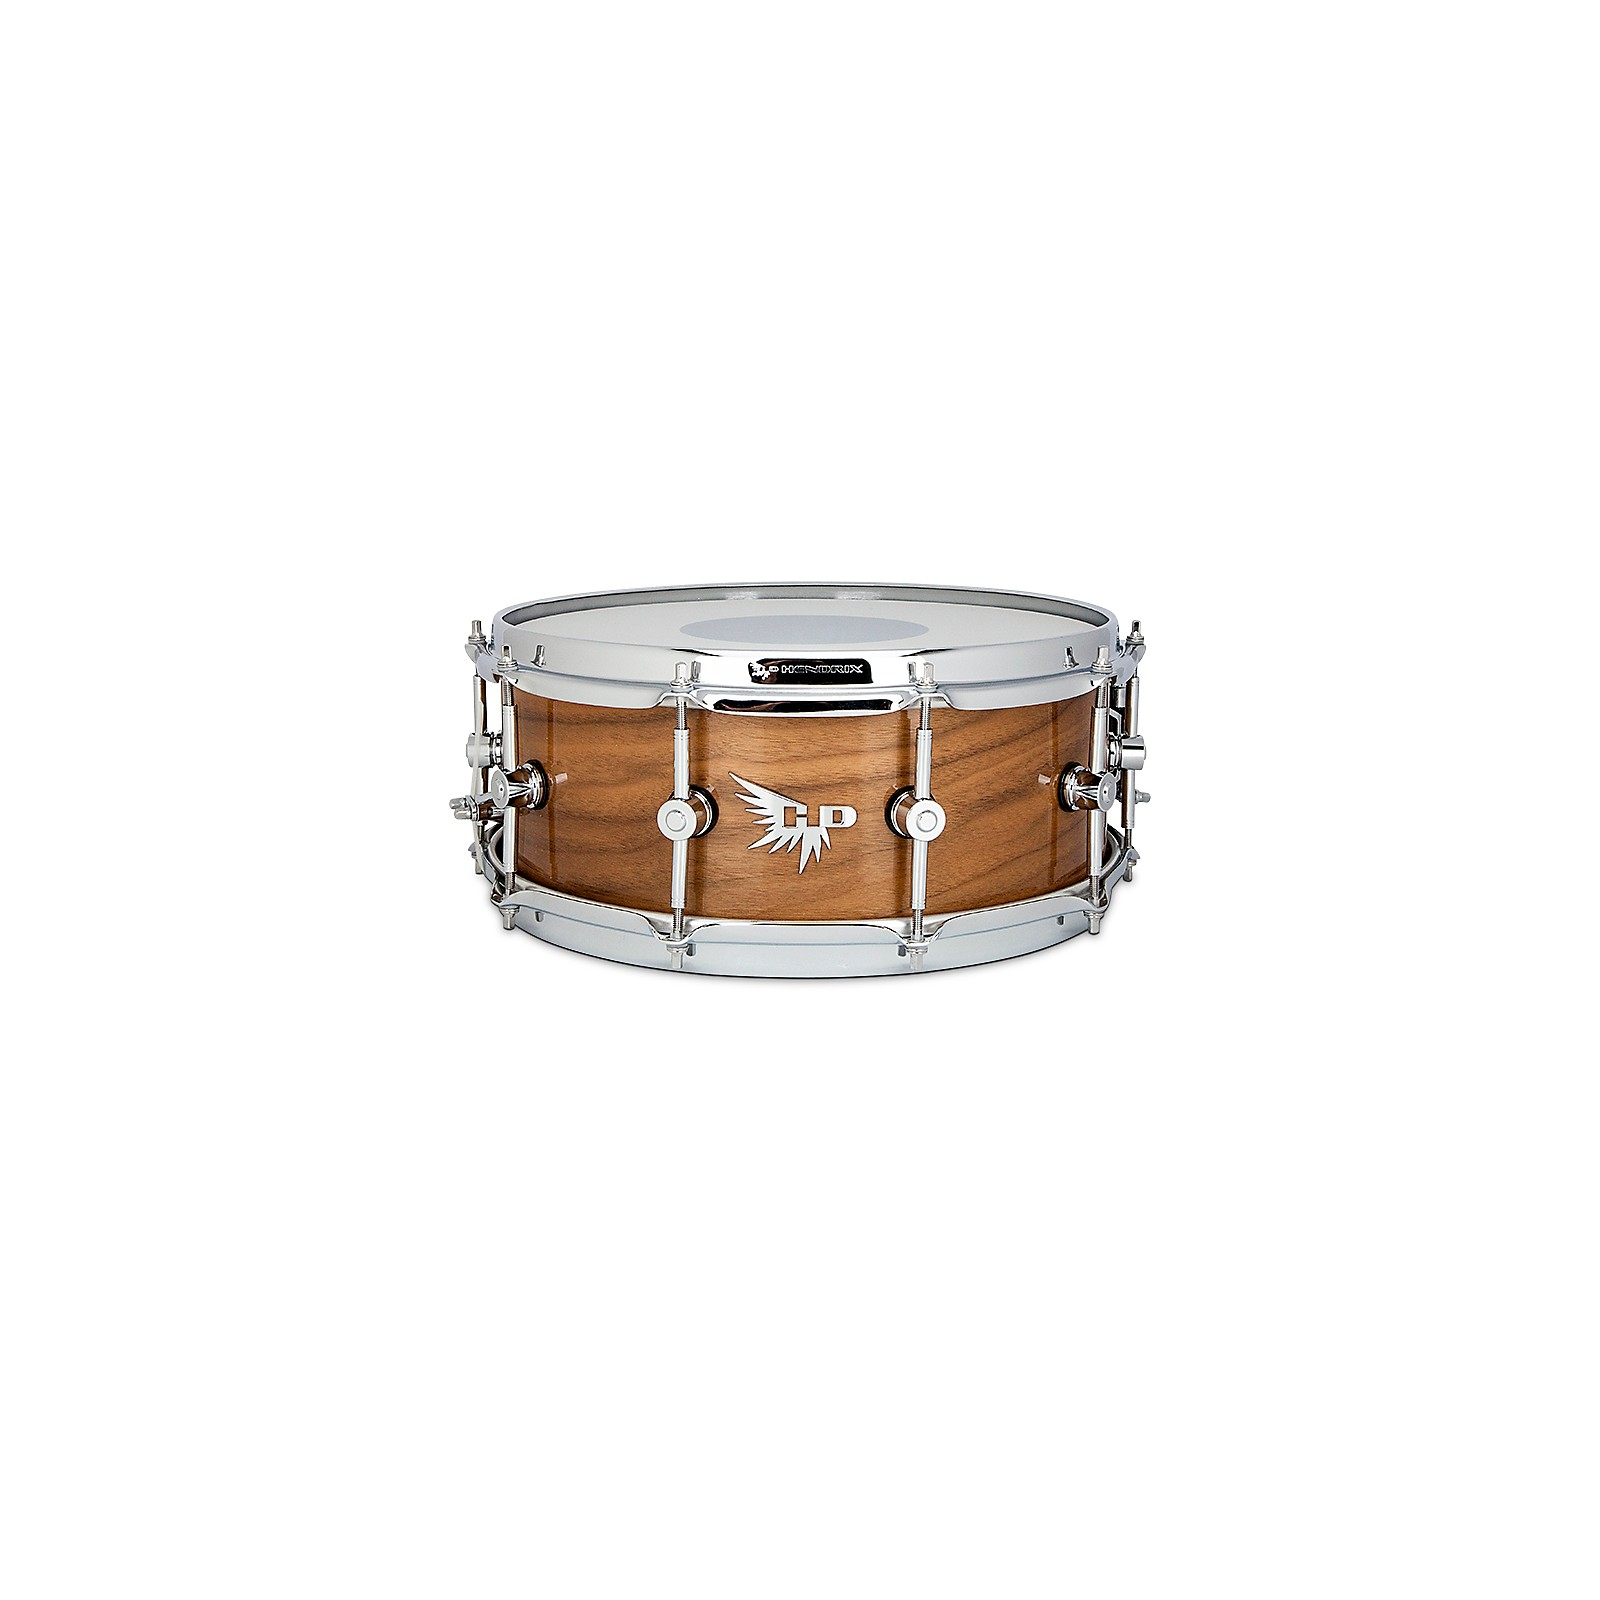 Hendrix Drums Perfect Ply Walnut Snare Drum